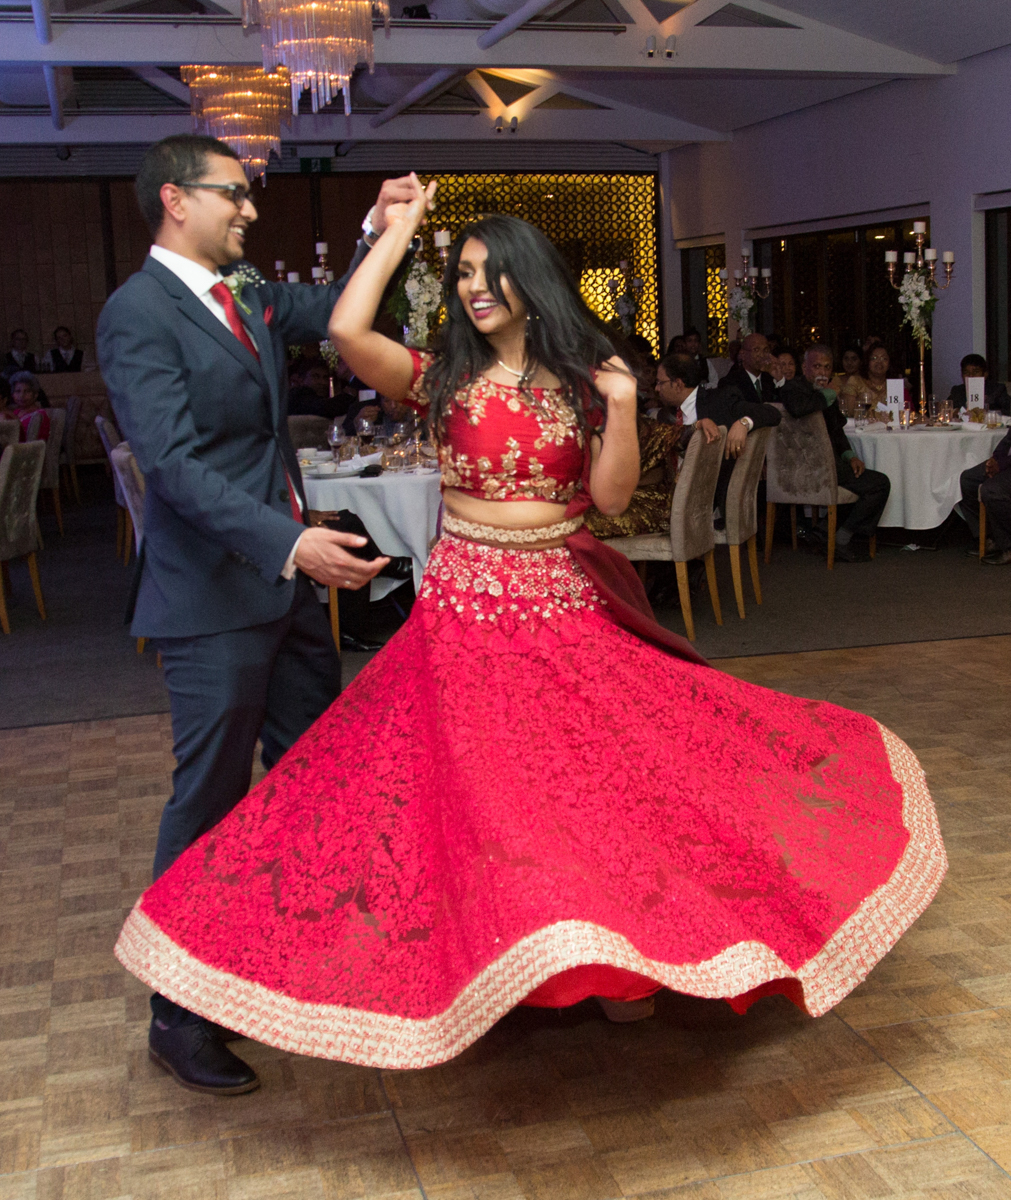 sri lankan wedding in sydney australia couple dancing, abirami's reception skirt twirling